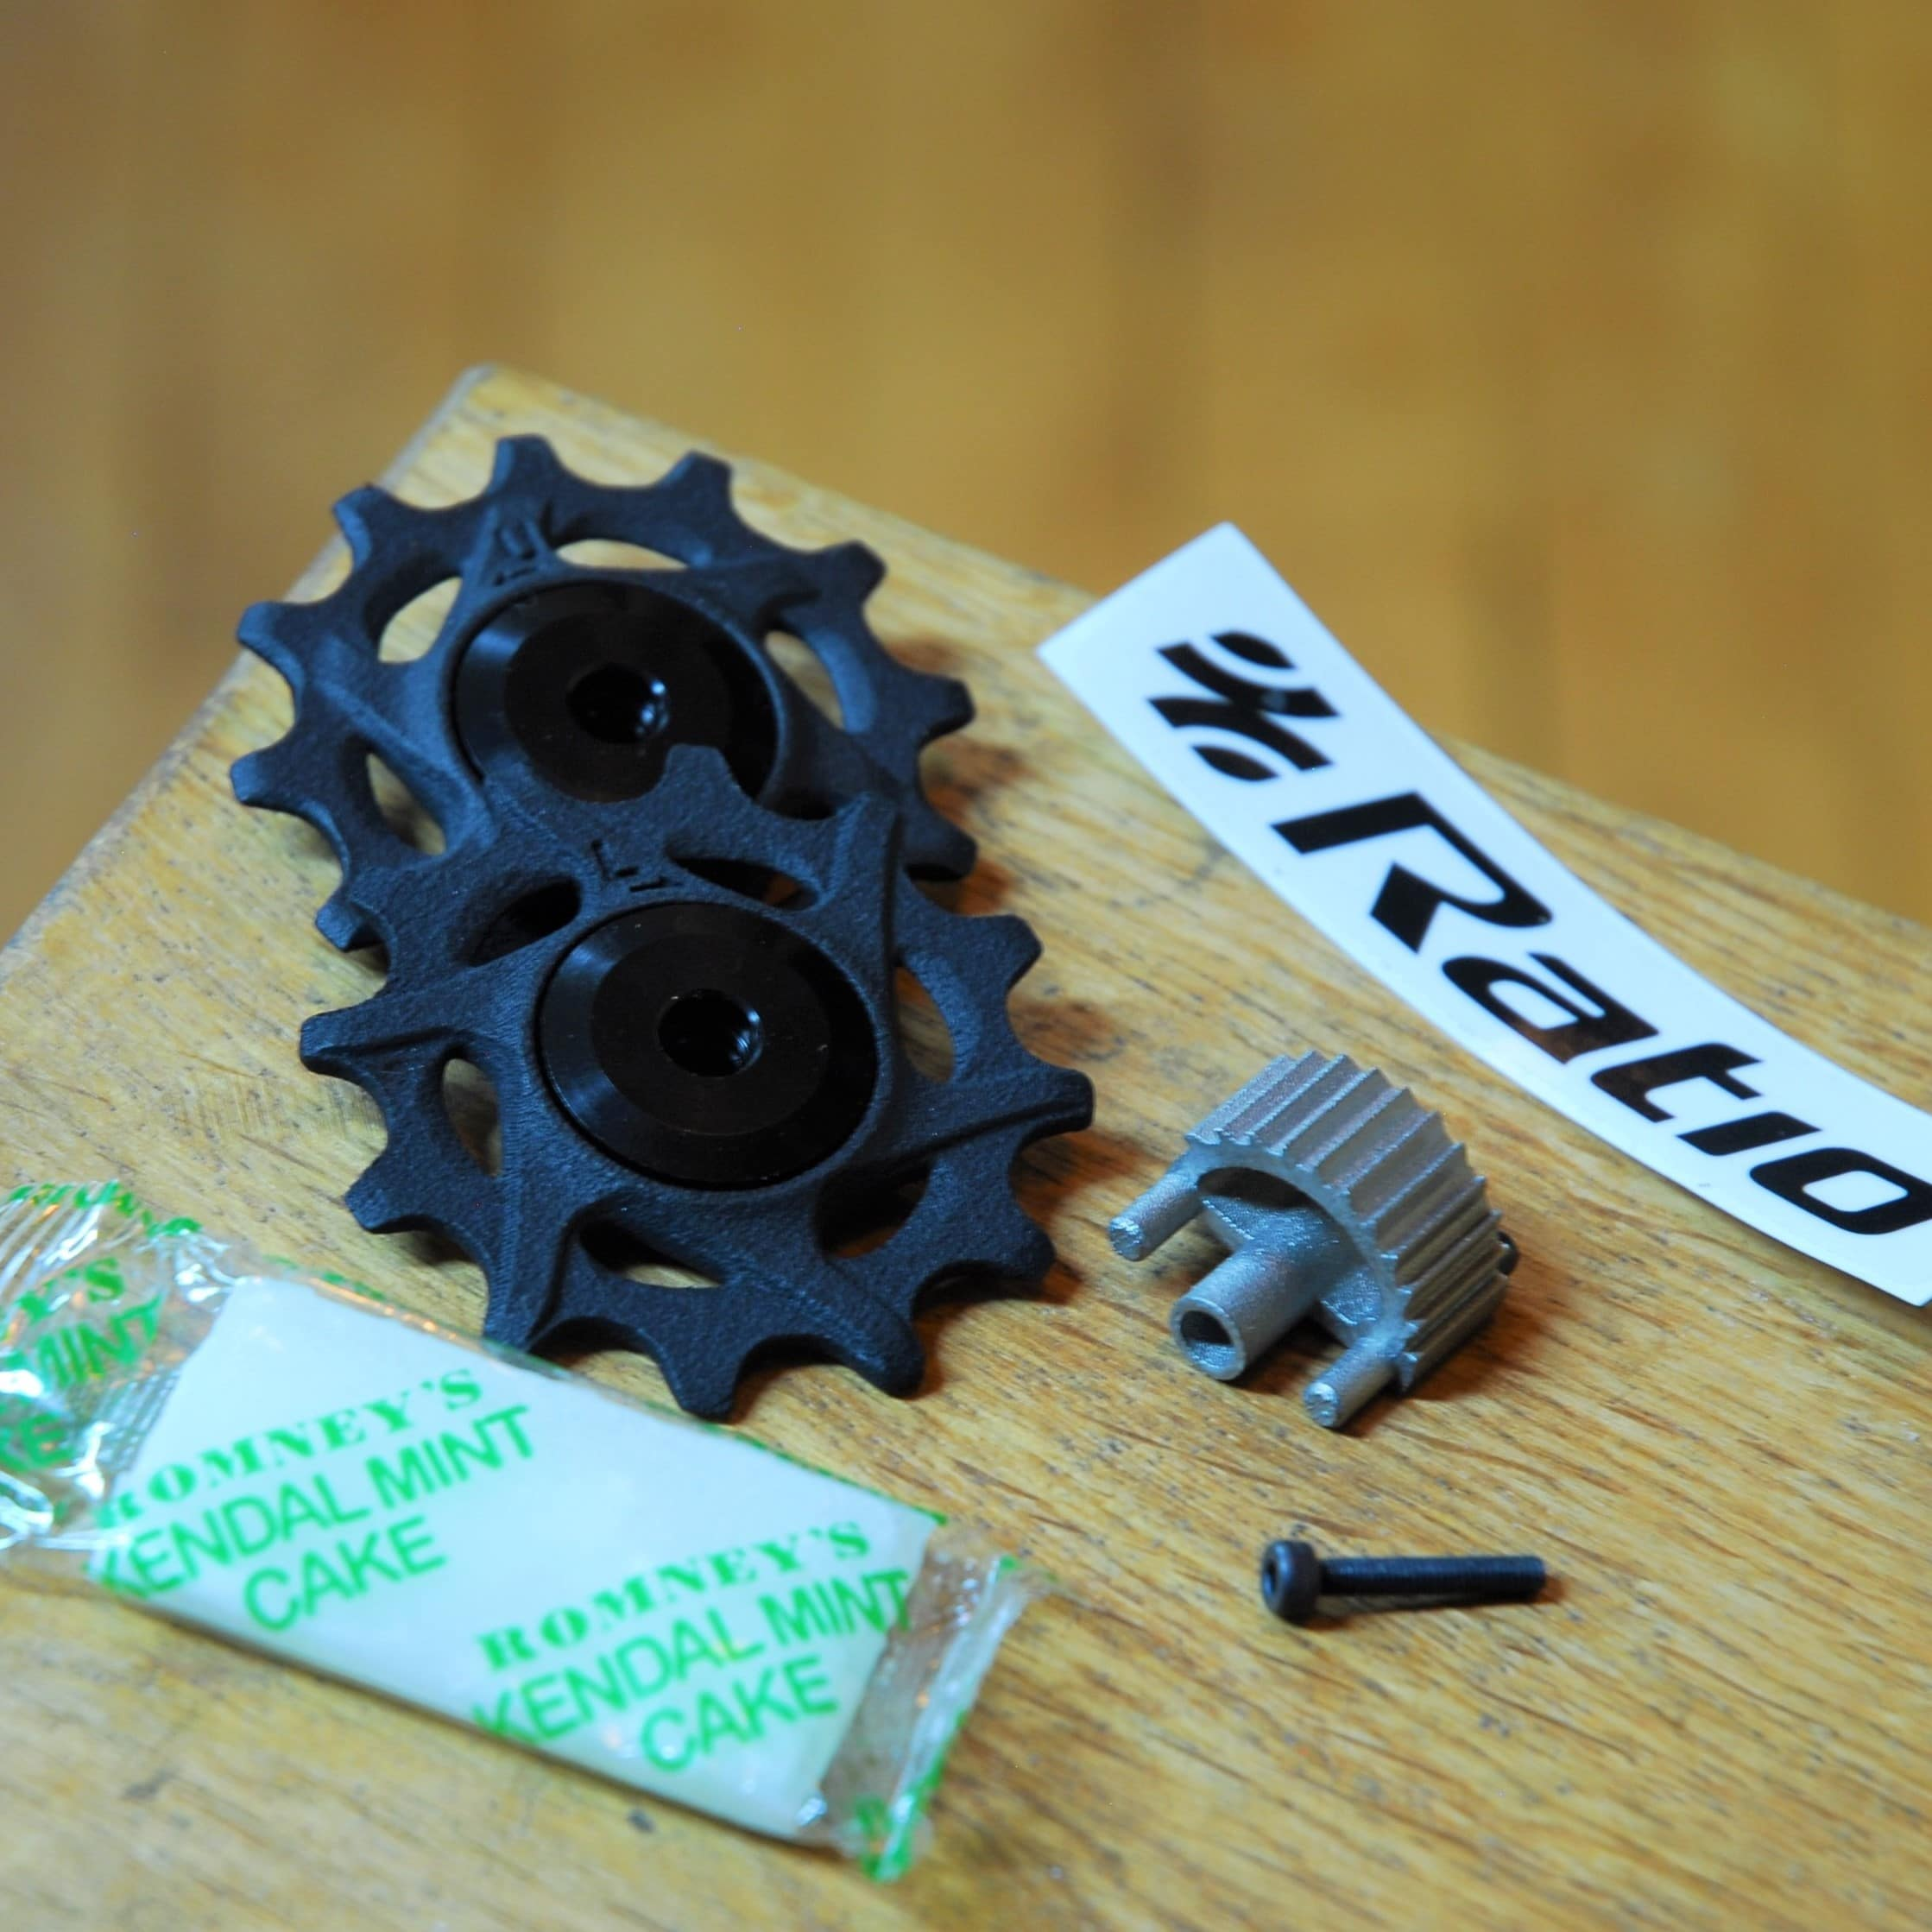 New Products: 1×12 for the road – Upgrade kit and cable spool